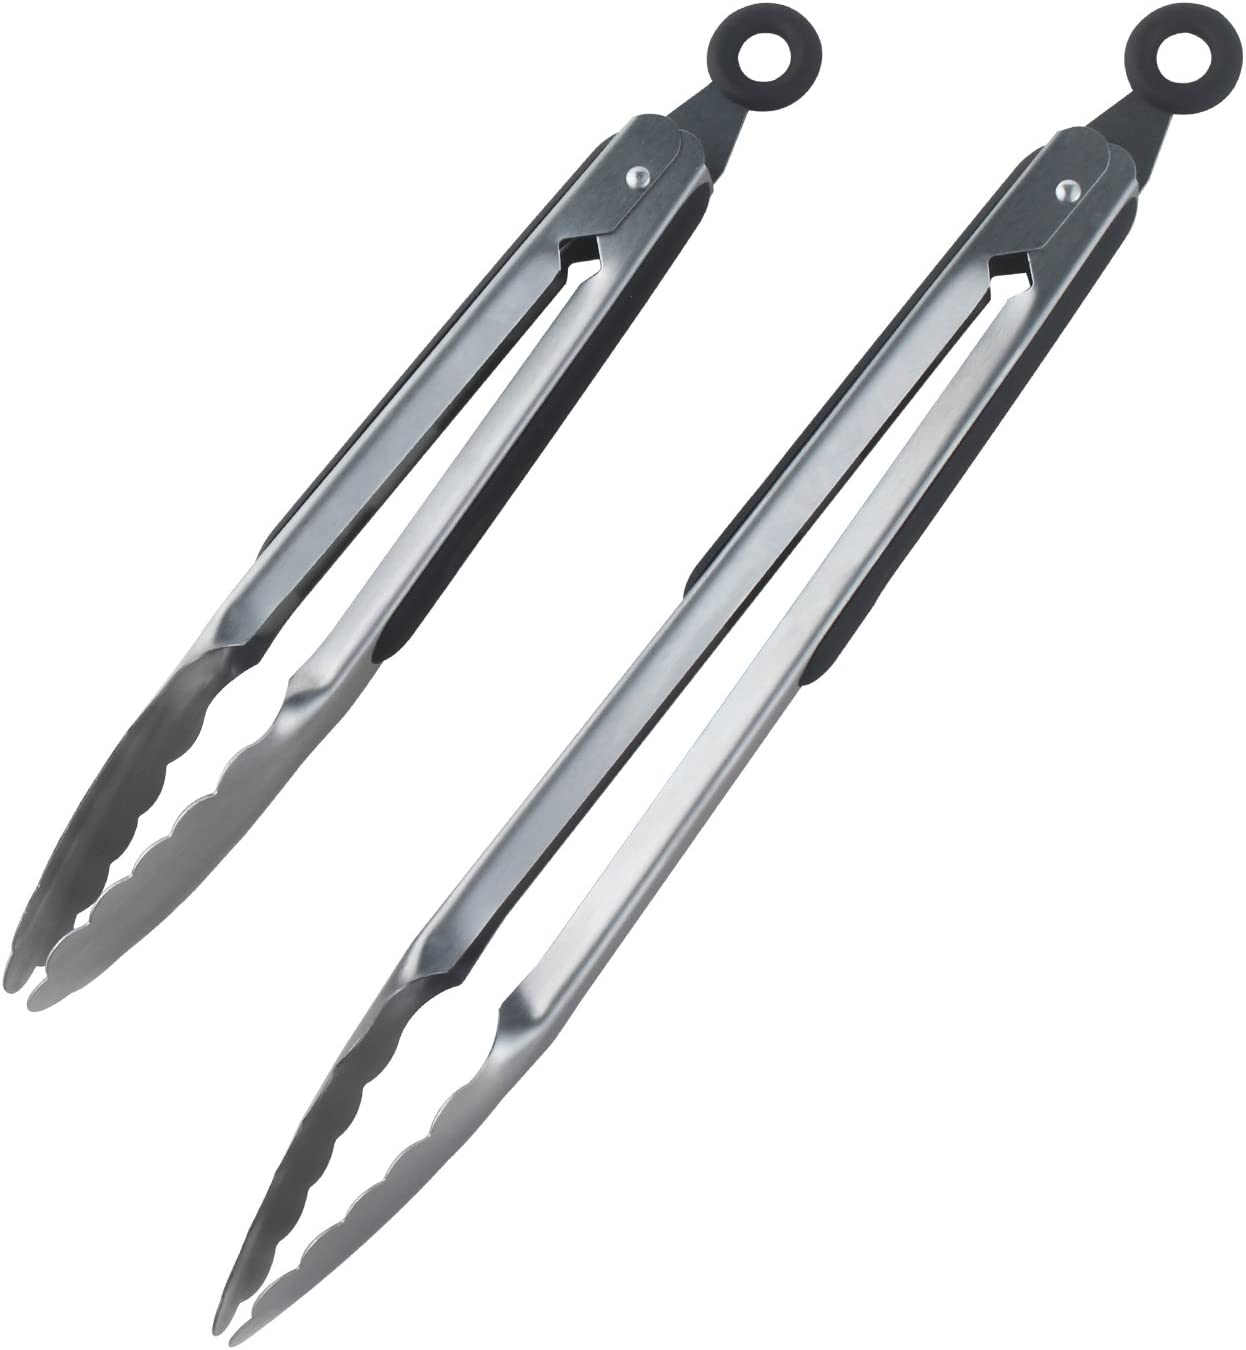 DRAGONN Premium Set of 12-inch and 9-inch Stainless-Steel Locking Kitchen Tongs,